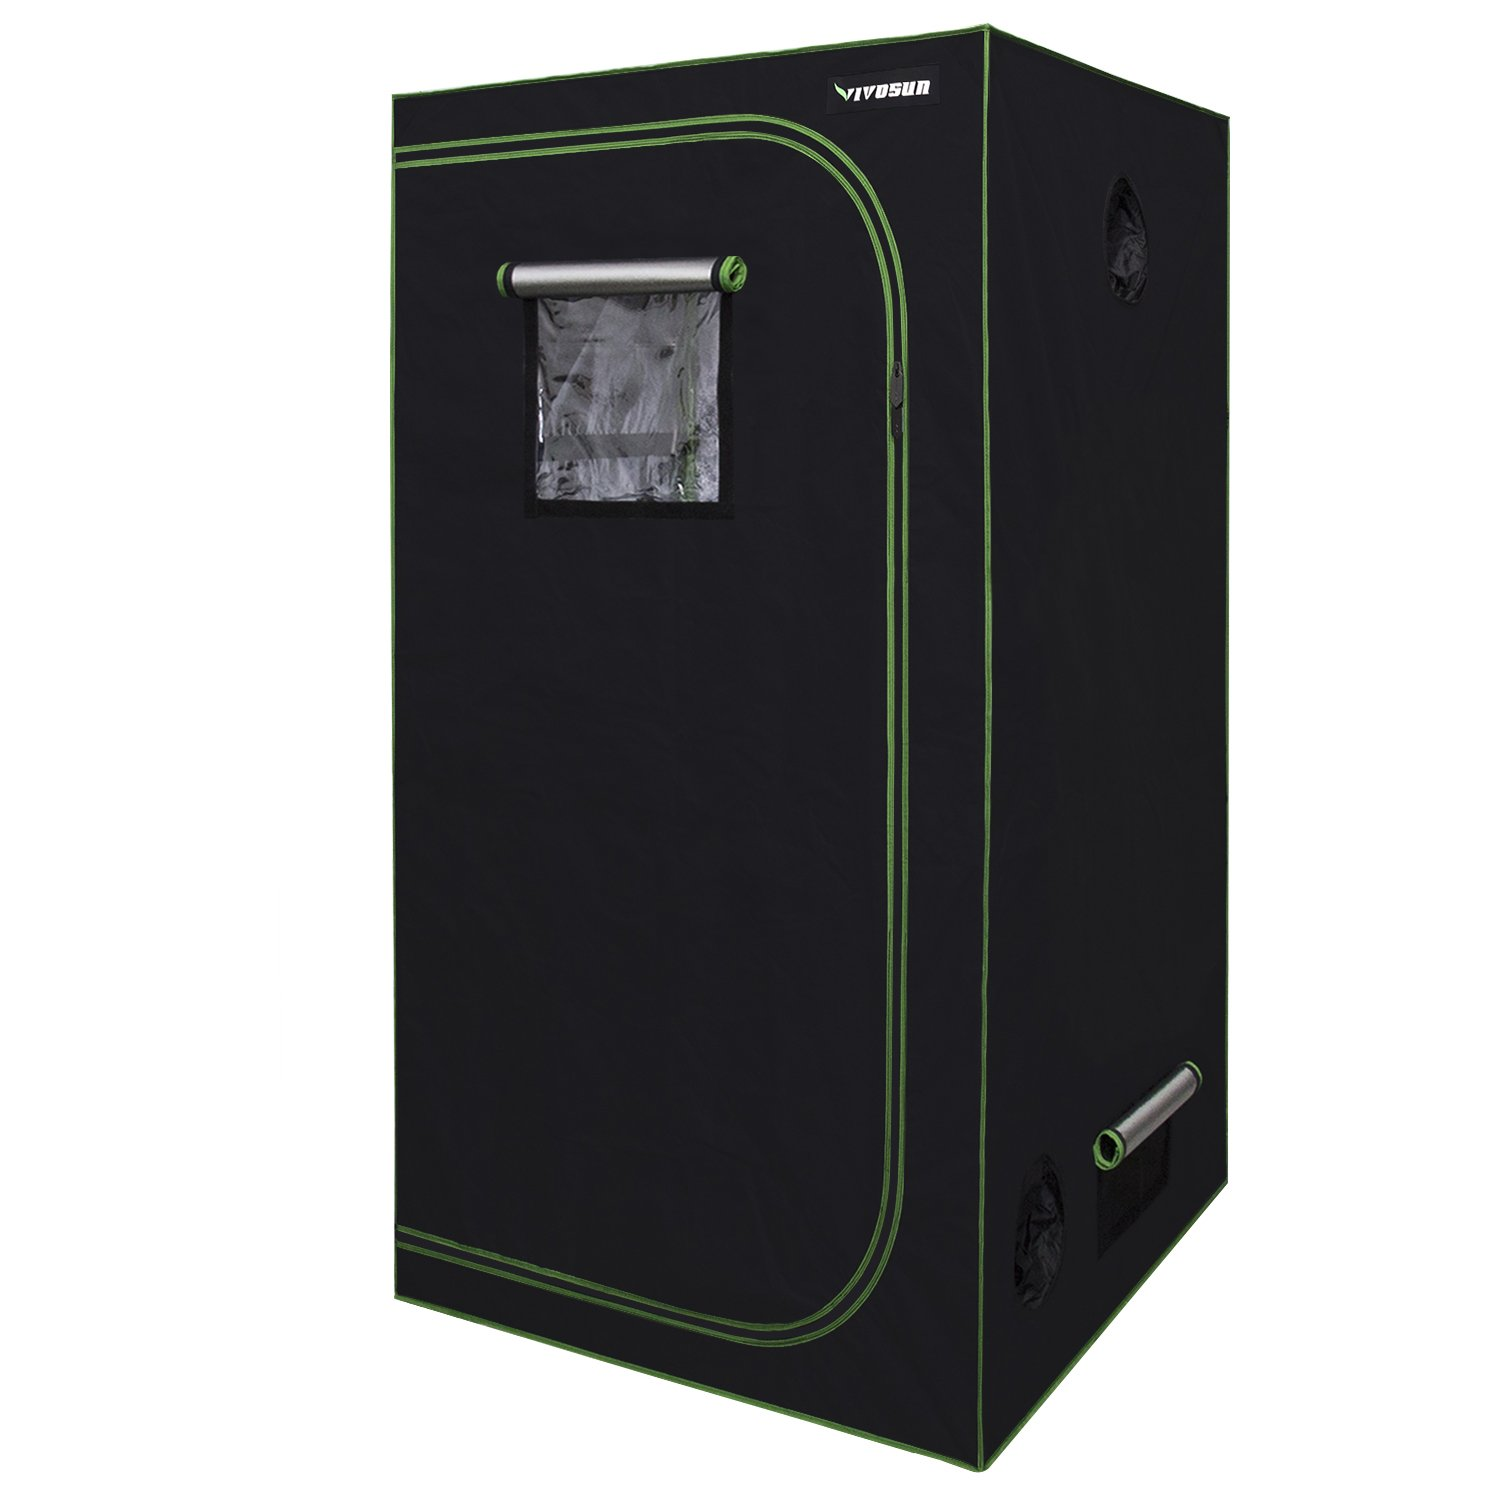 VIVOSUN 3×3 Hydroponic Grow Tent for Indoor Plant